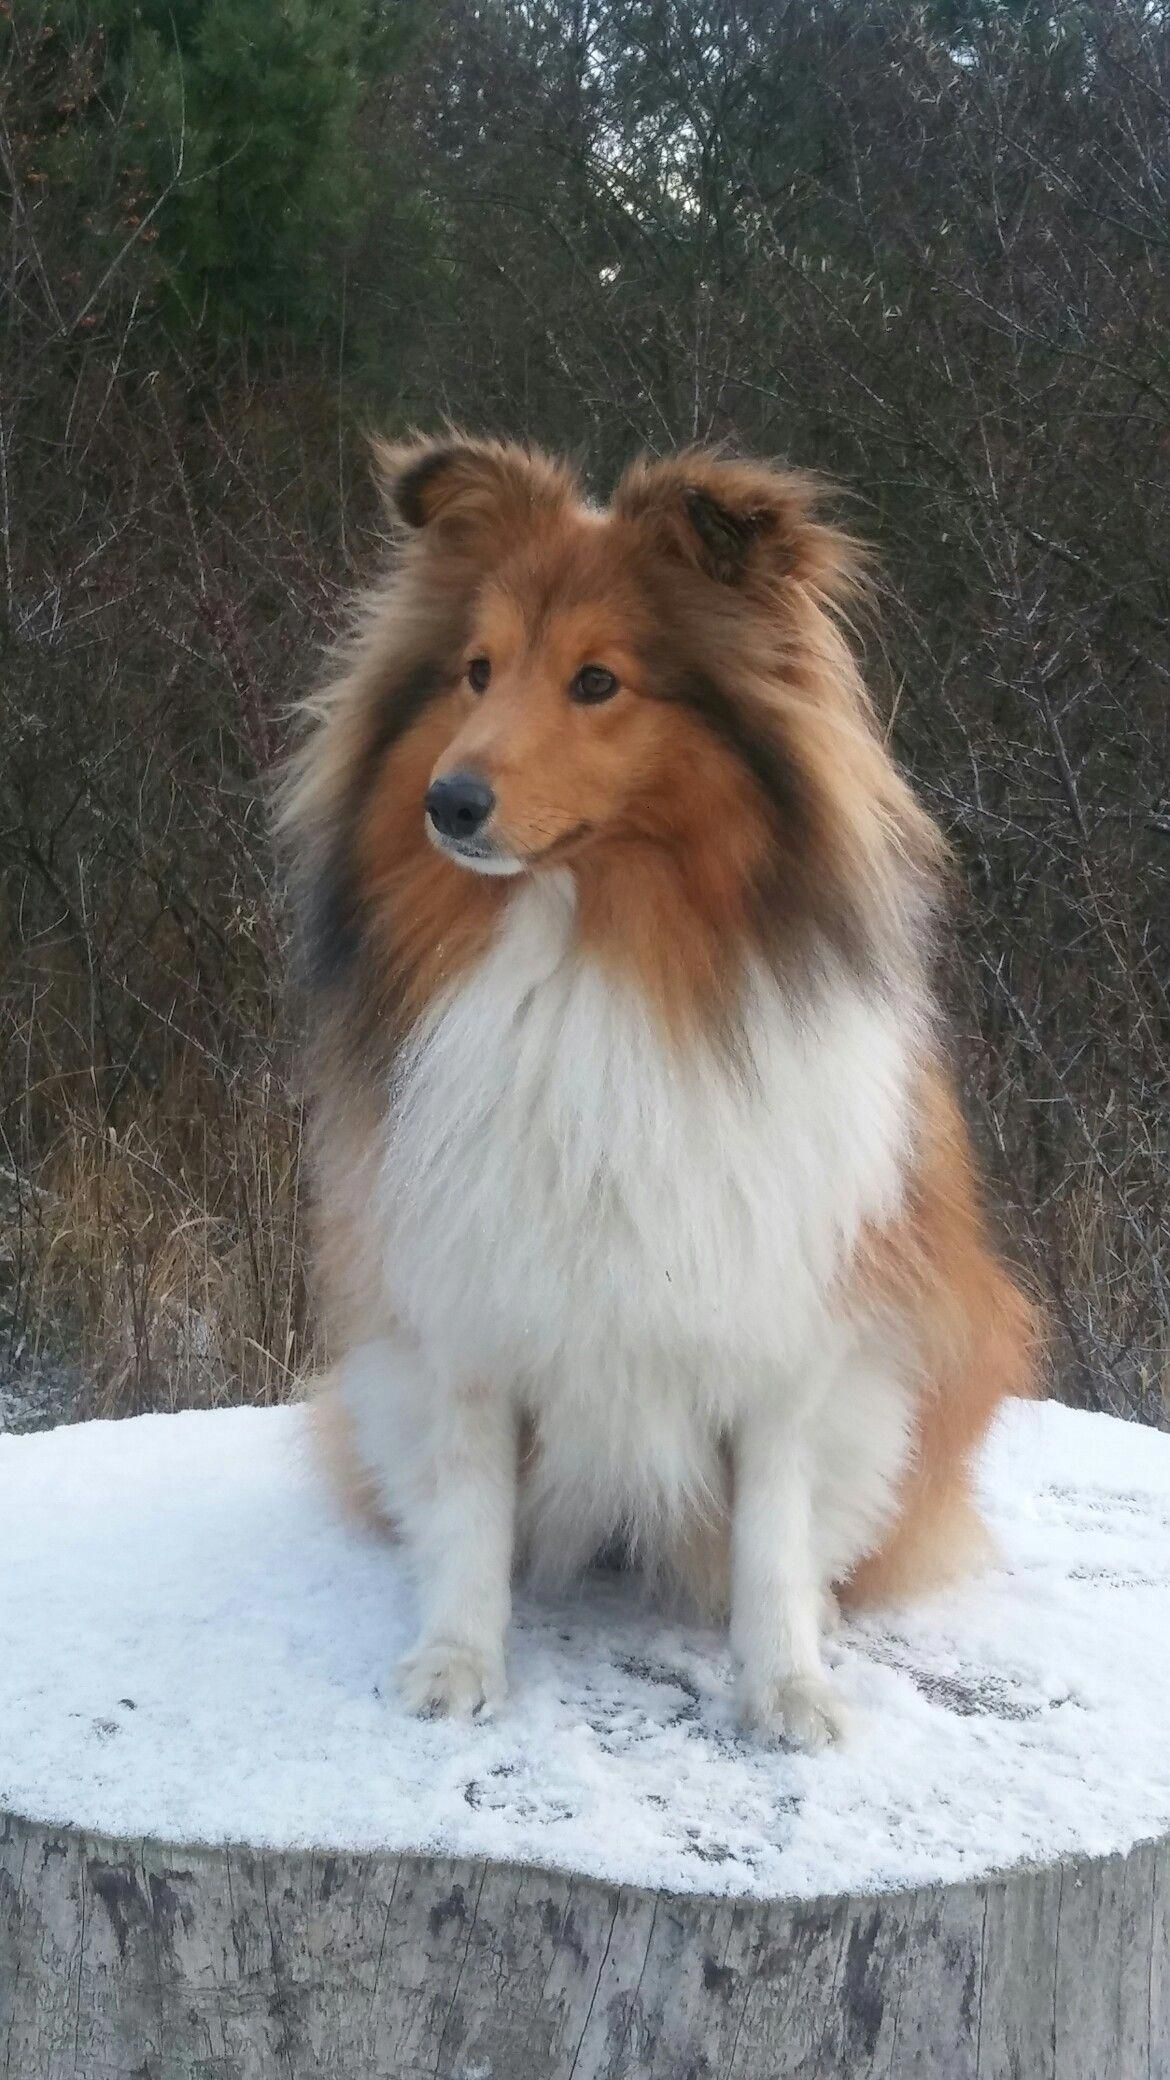 Setland Sheepdog Shetland Sheepdog Shetland Sheepdog Puppies